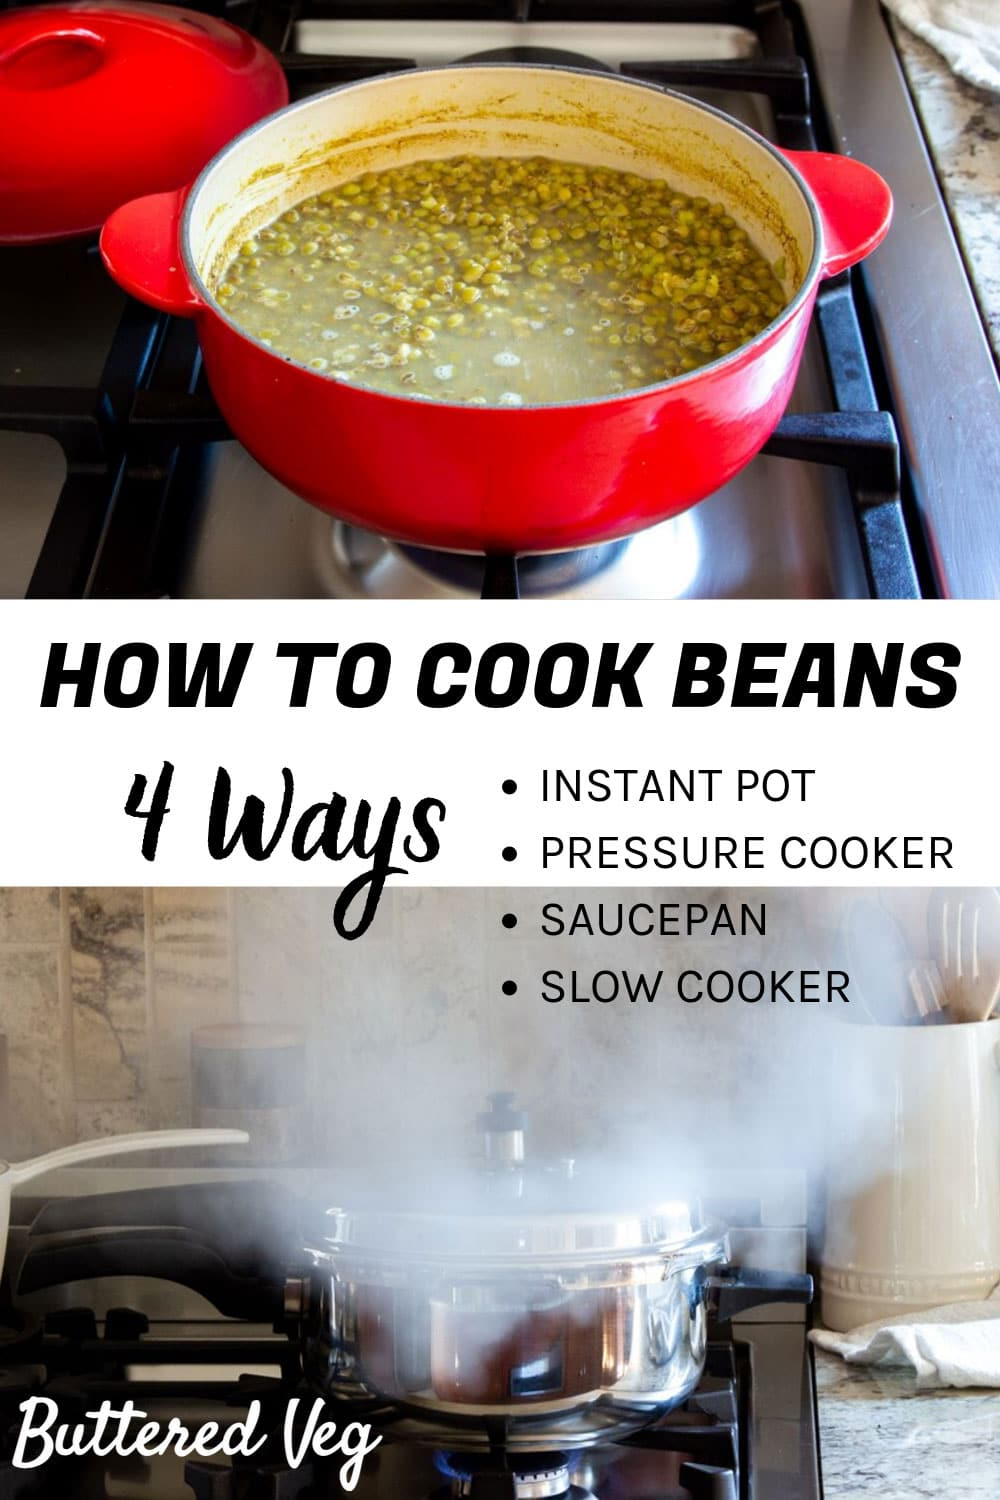 Need to cook beans, lentils, or peas, but not sure how to? Step-by-step tips for soft beans using a pressure cooker, Instant Pot, slow cooker, or saucepan. #pressurecooker #instantpot #slowcooker #beans #lentils #cookingtips #butteredveg